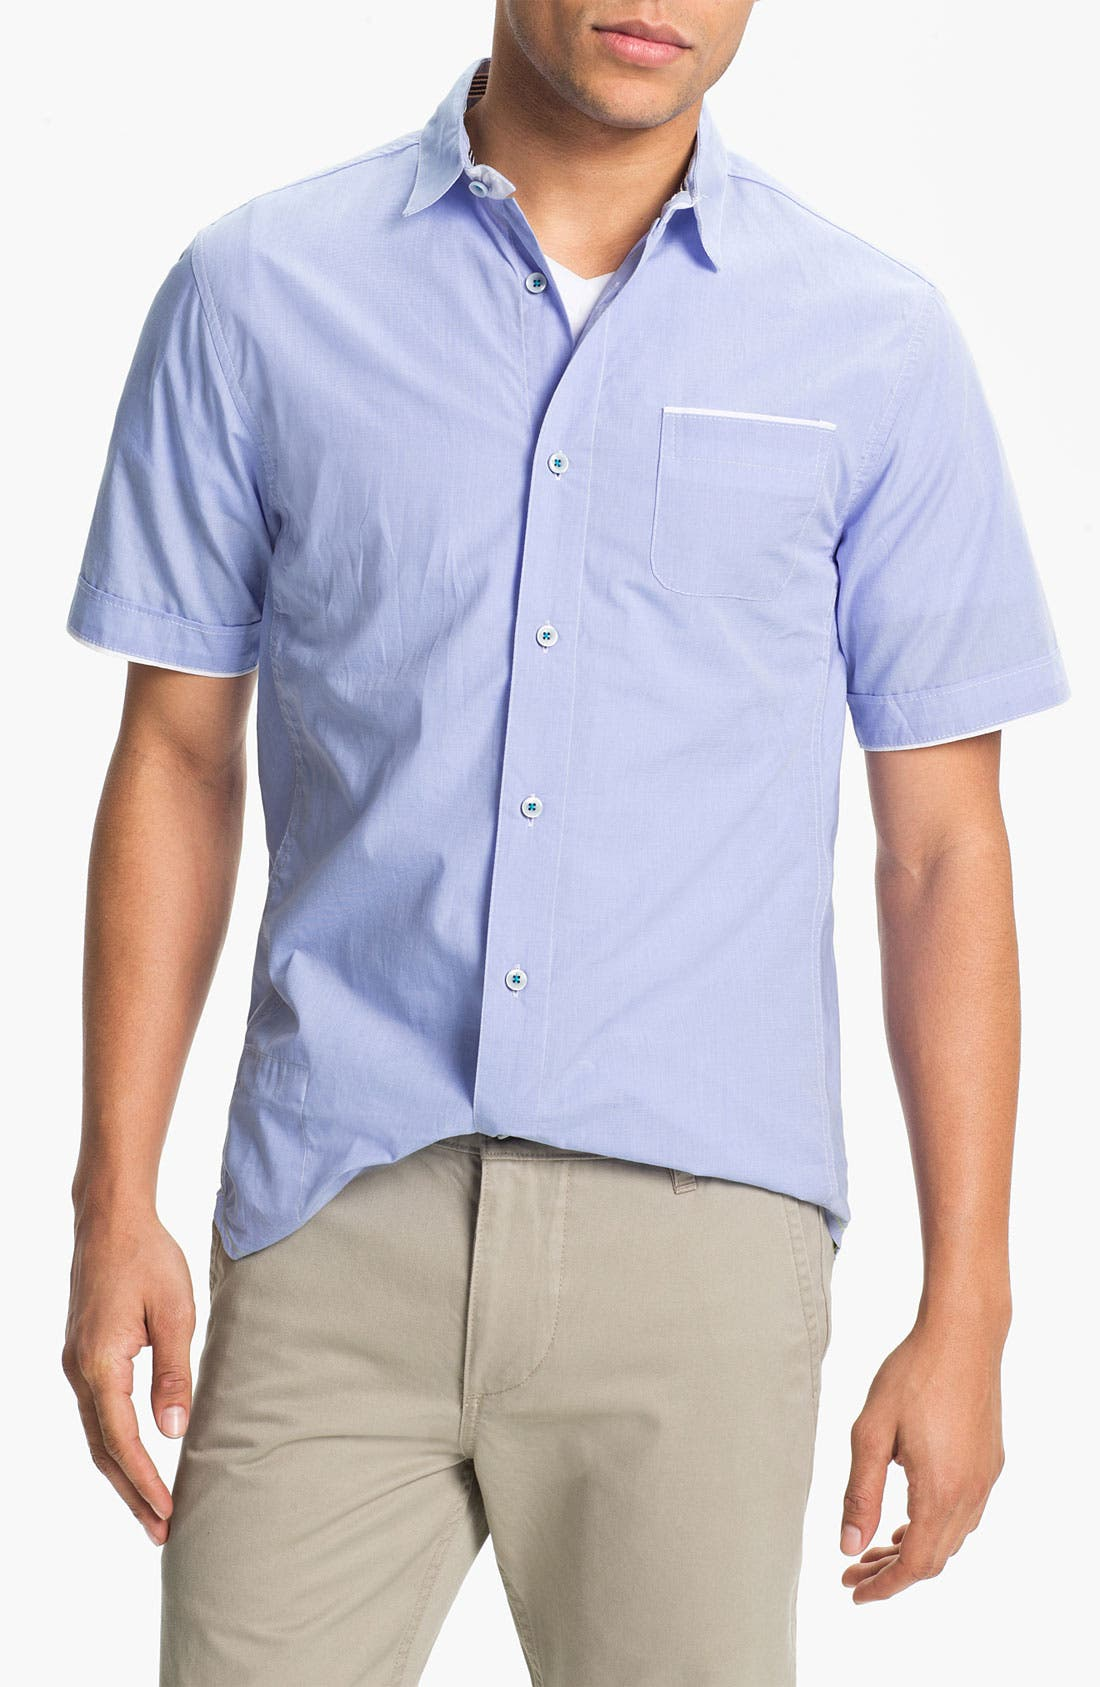 Alternate Image 1 Selected - Descendant of Thieves End-on-End Woven Shirt